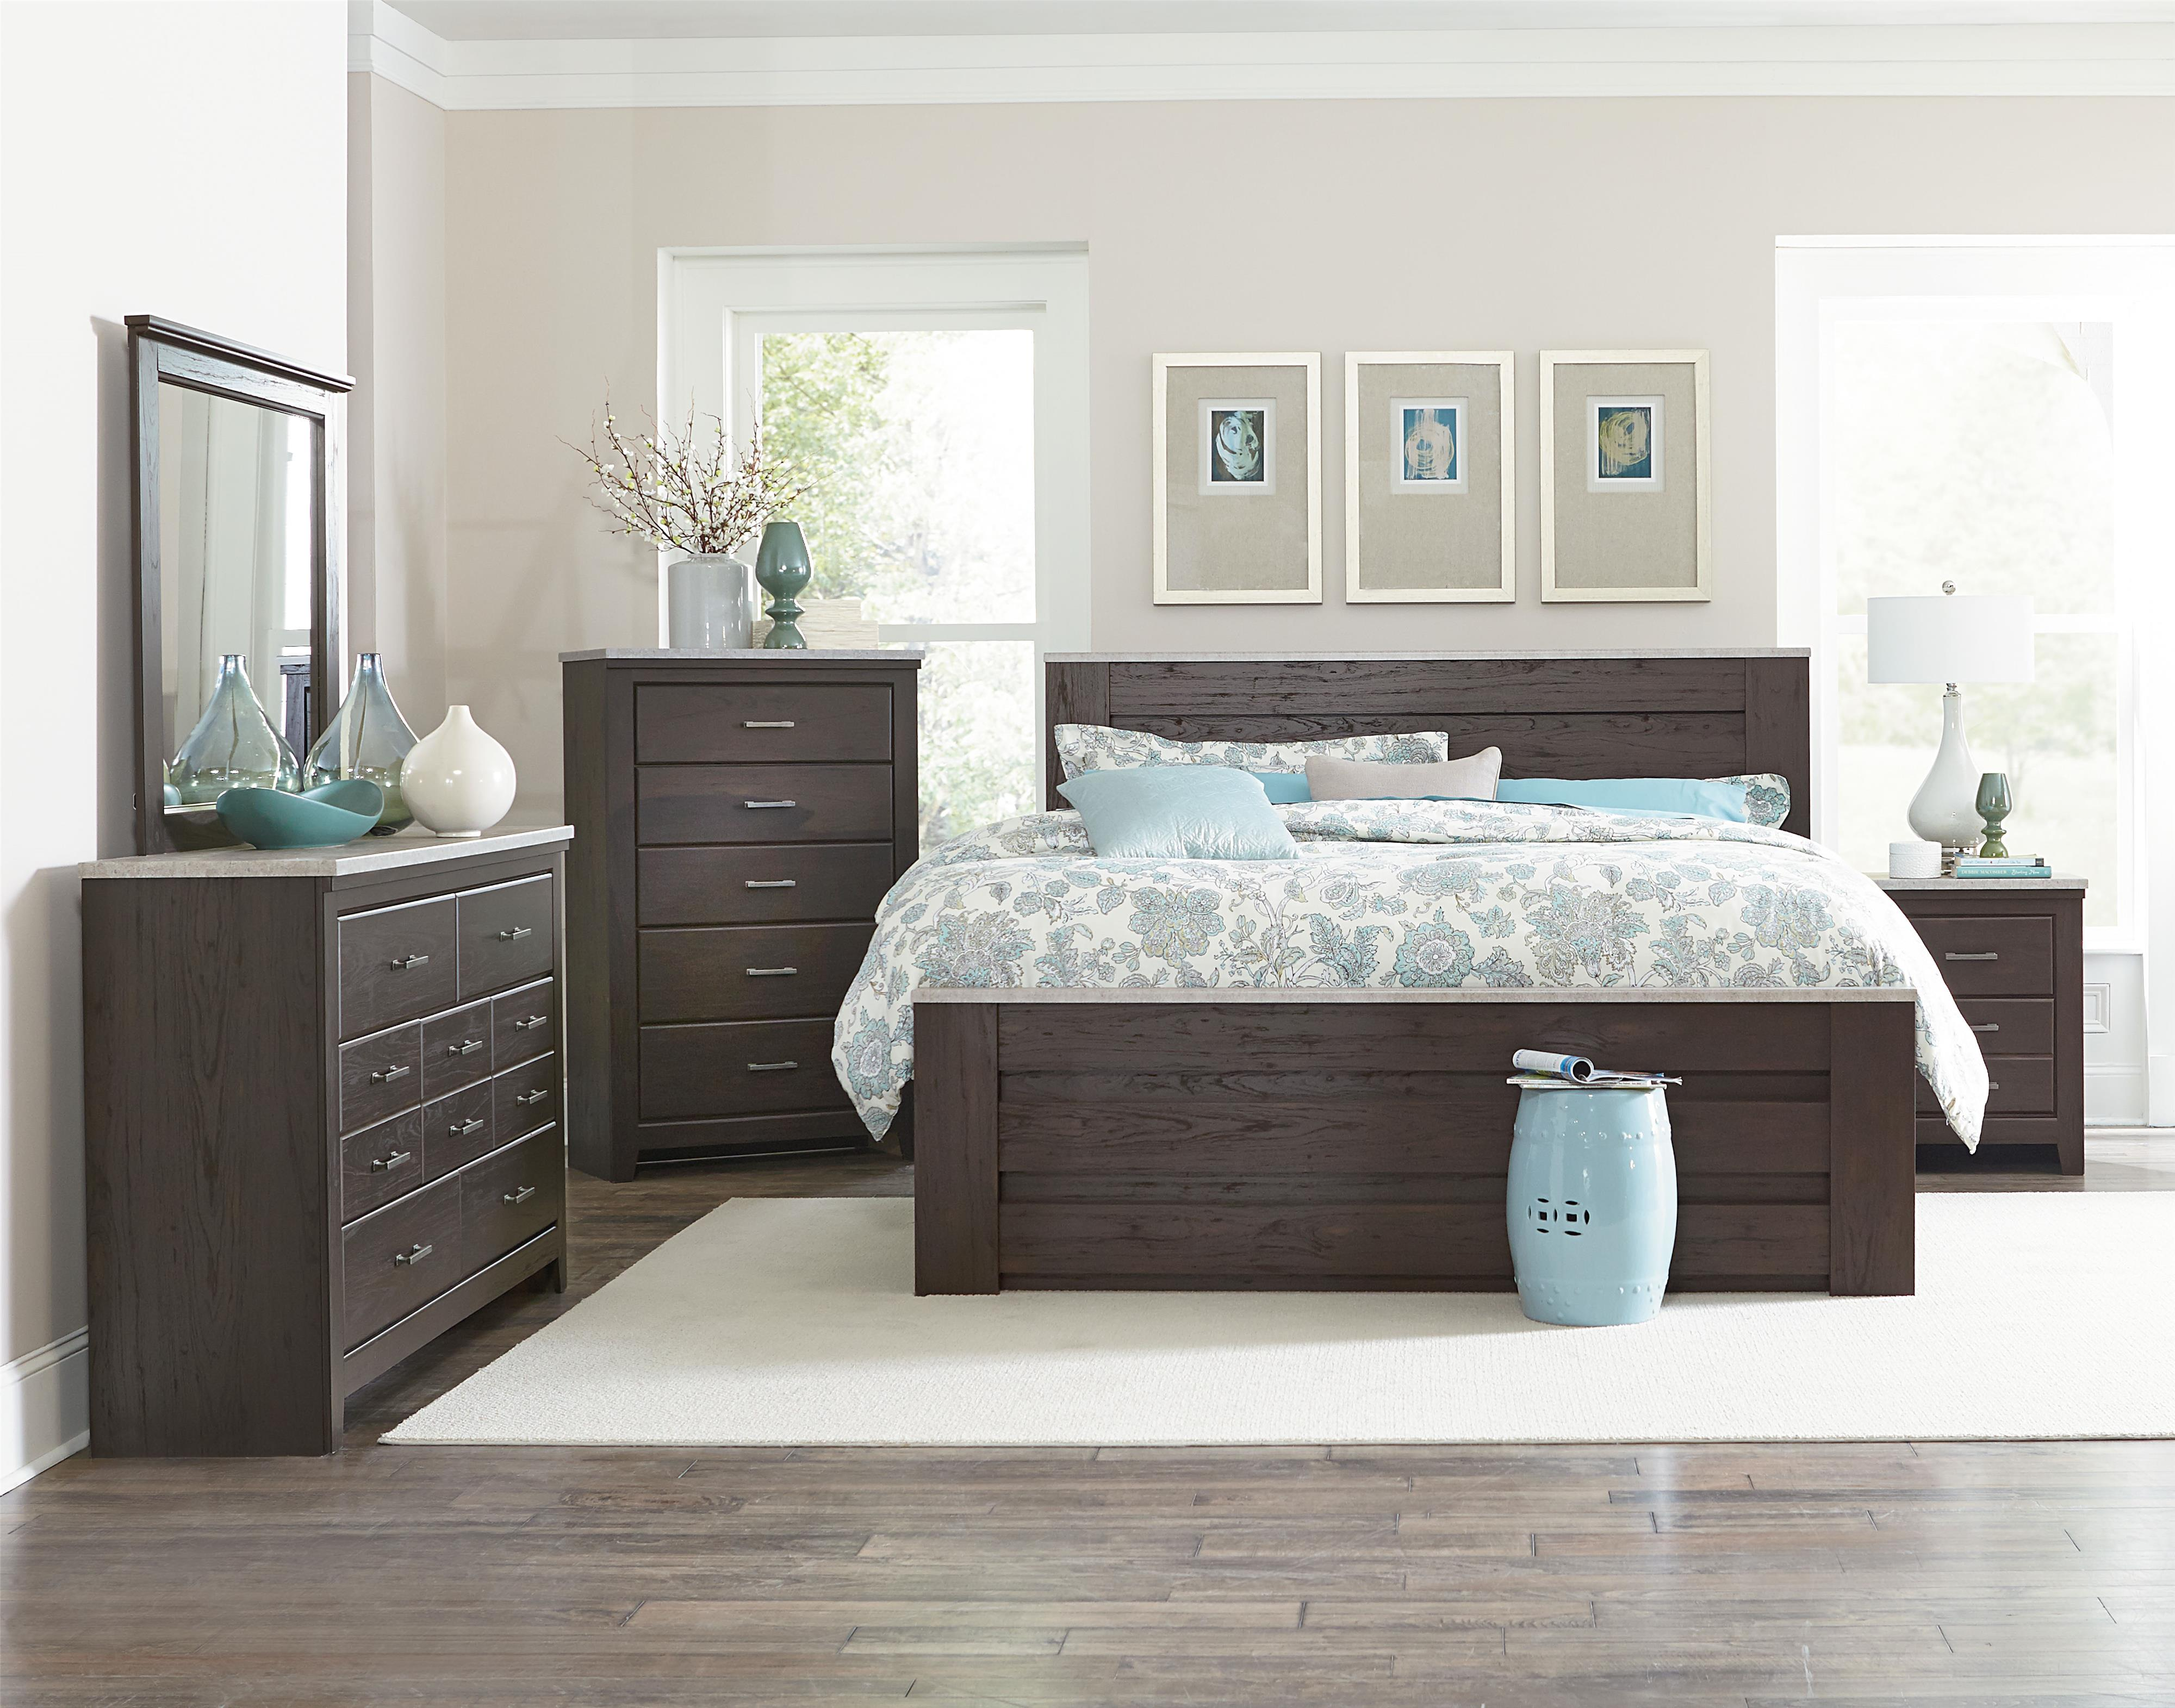 king bedroom group by standard furniture wolf and gardiner wolf furniture. Black Bedroom Furniture Sets. Home Design Ideas